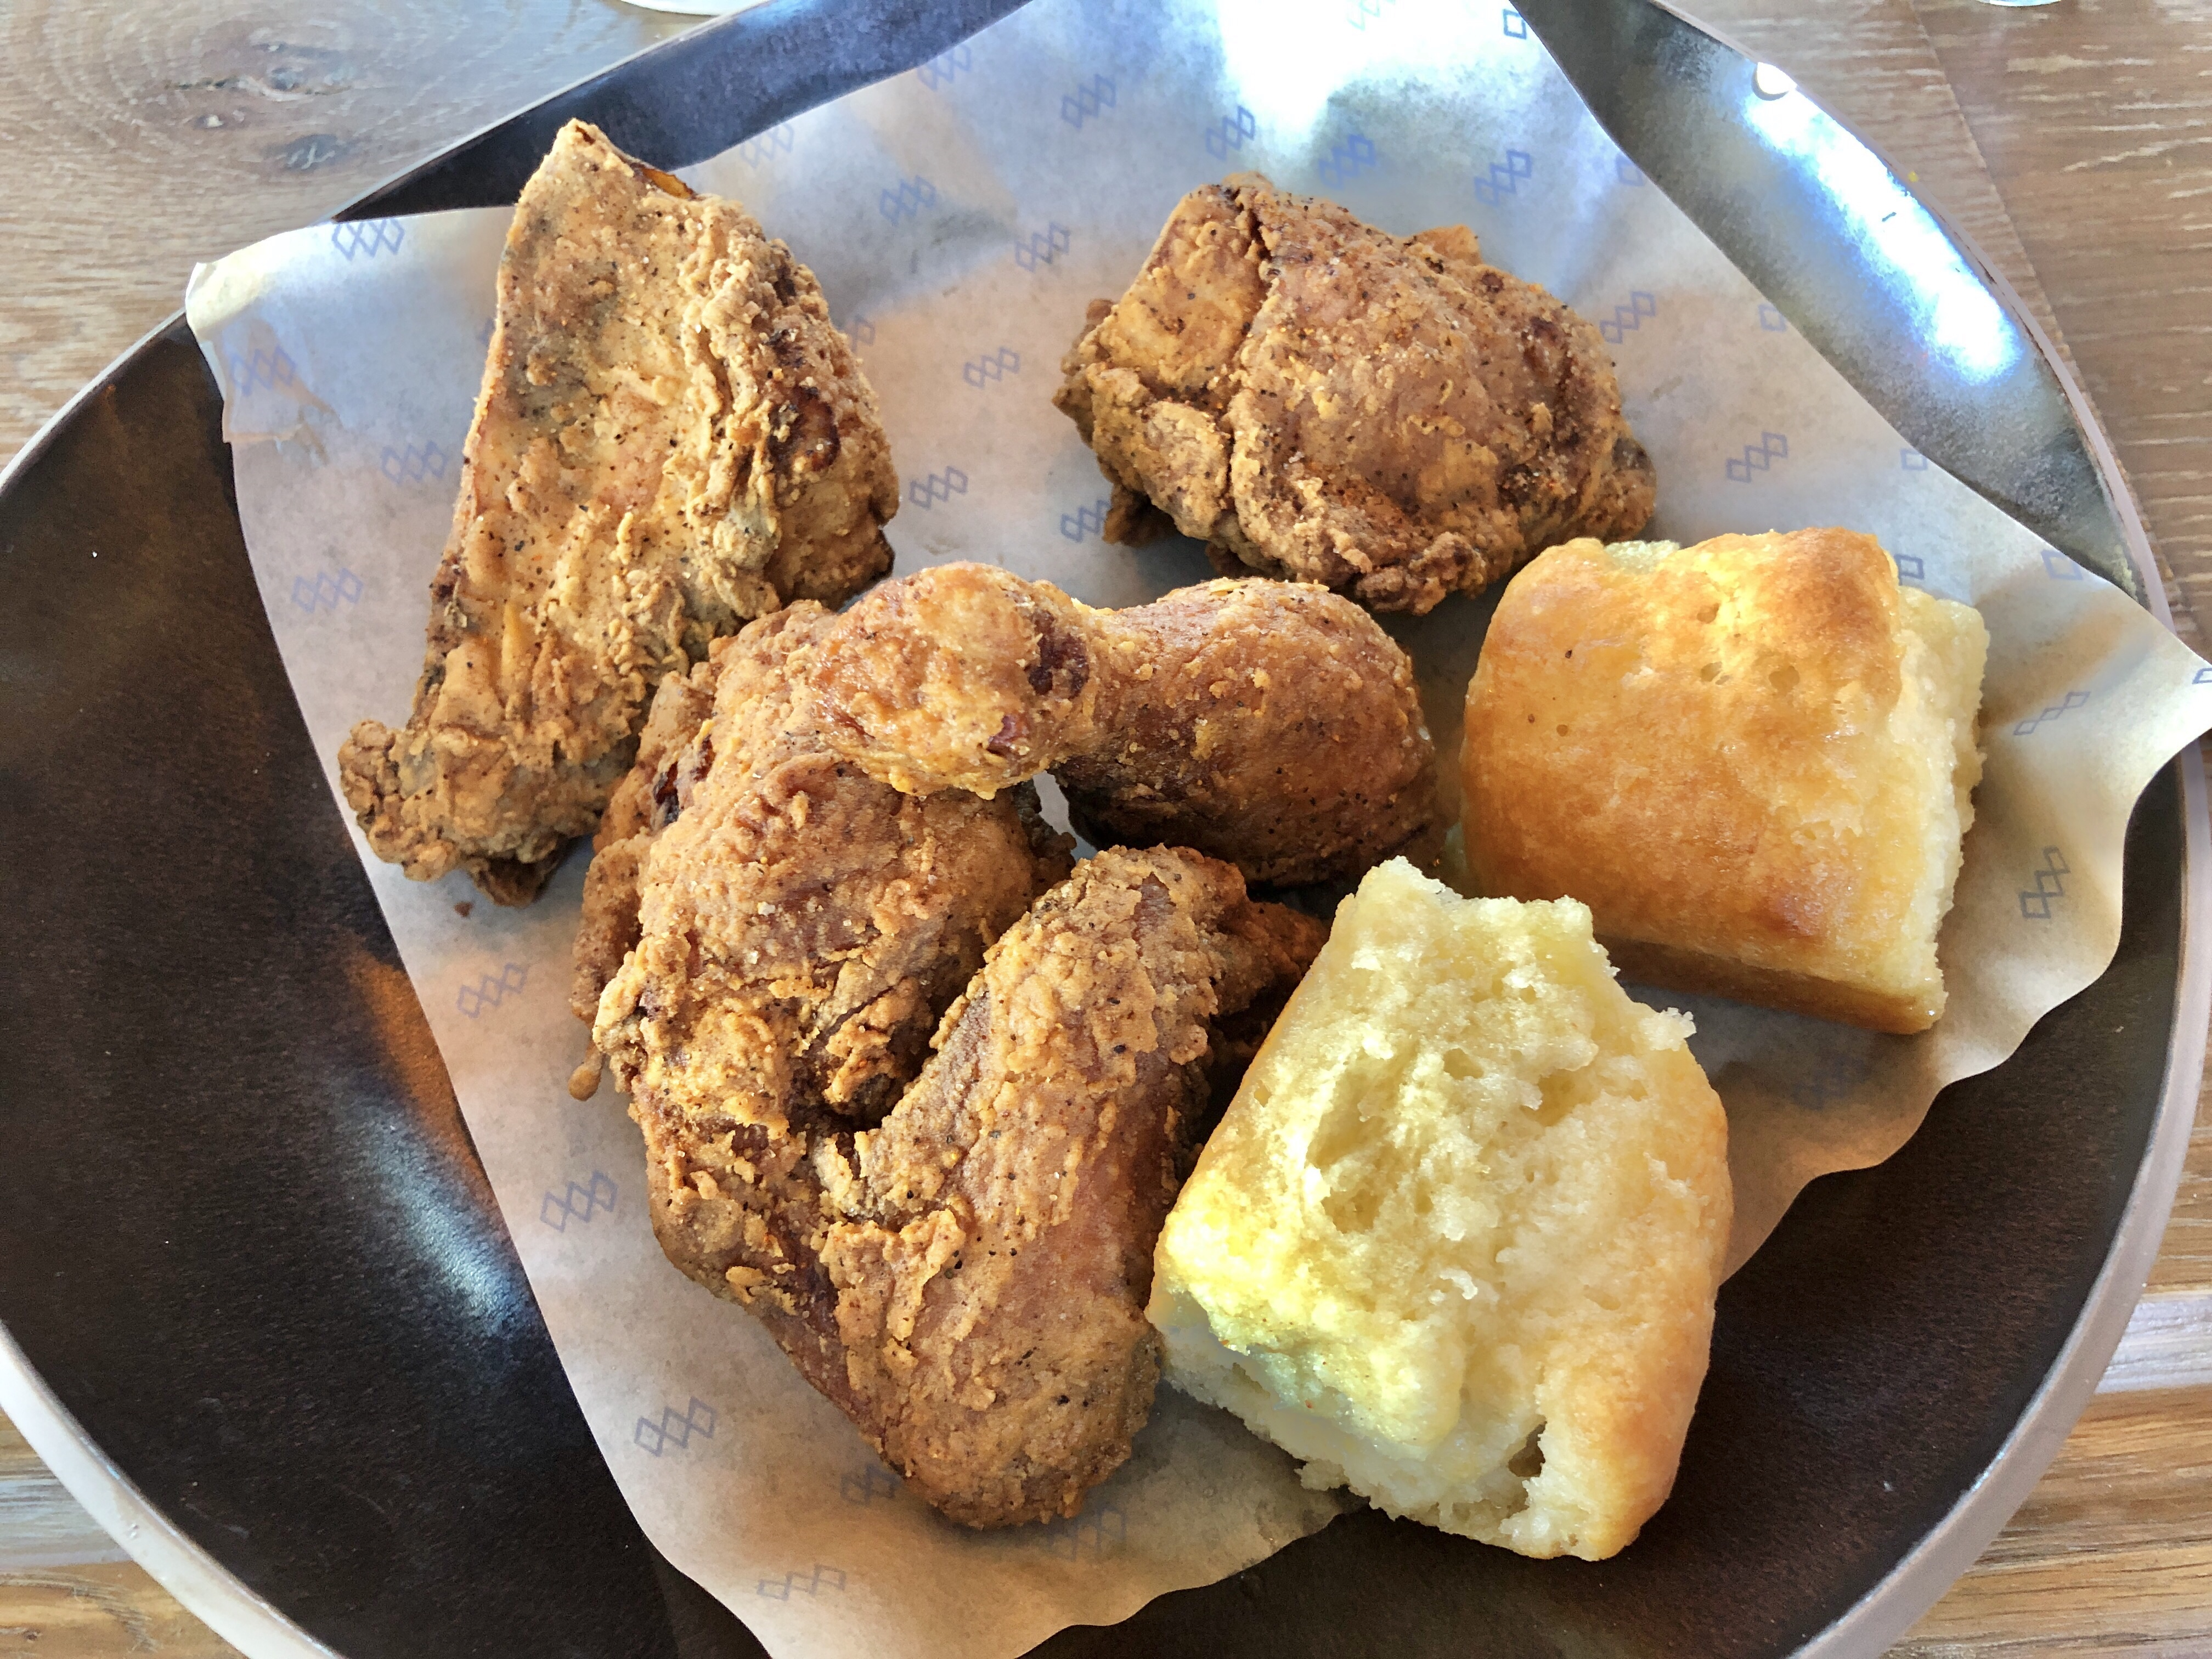 Southern-style fried chicken with honey-butter biscuits at Rye Street Tavern in Port Covington, Baltimore, Maryland